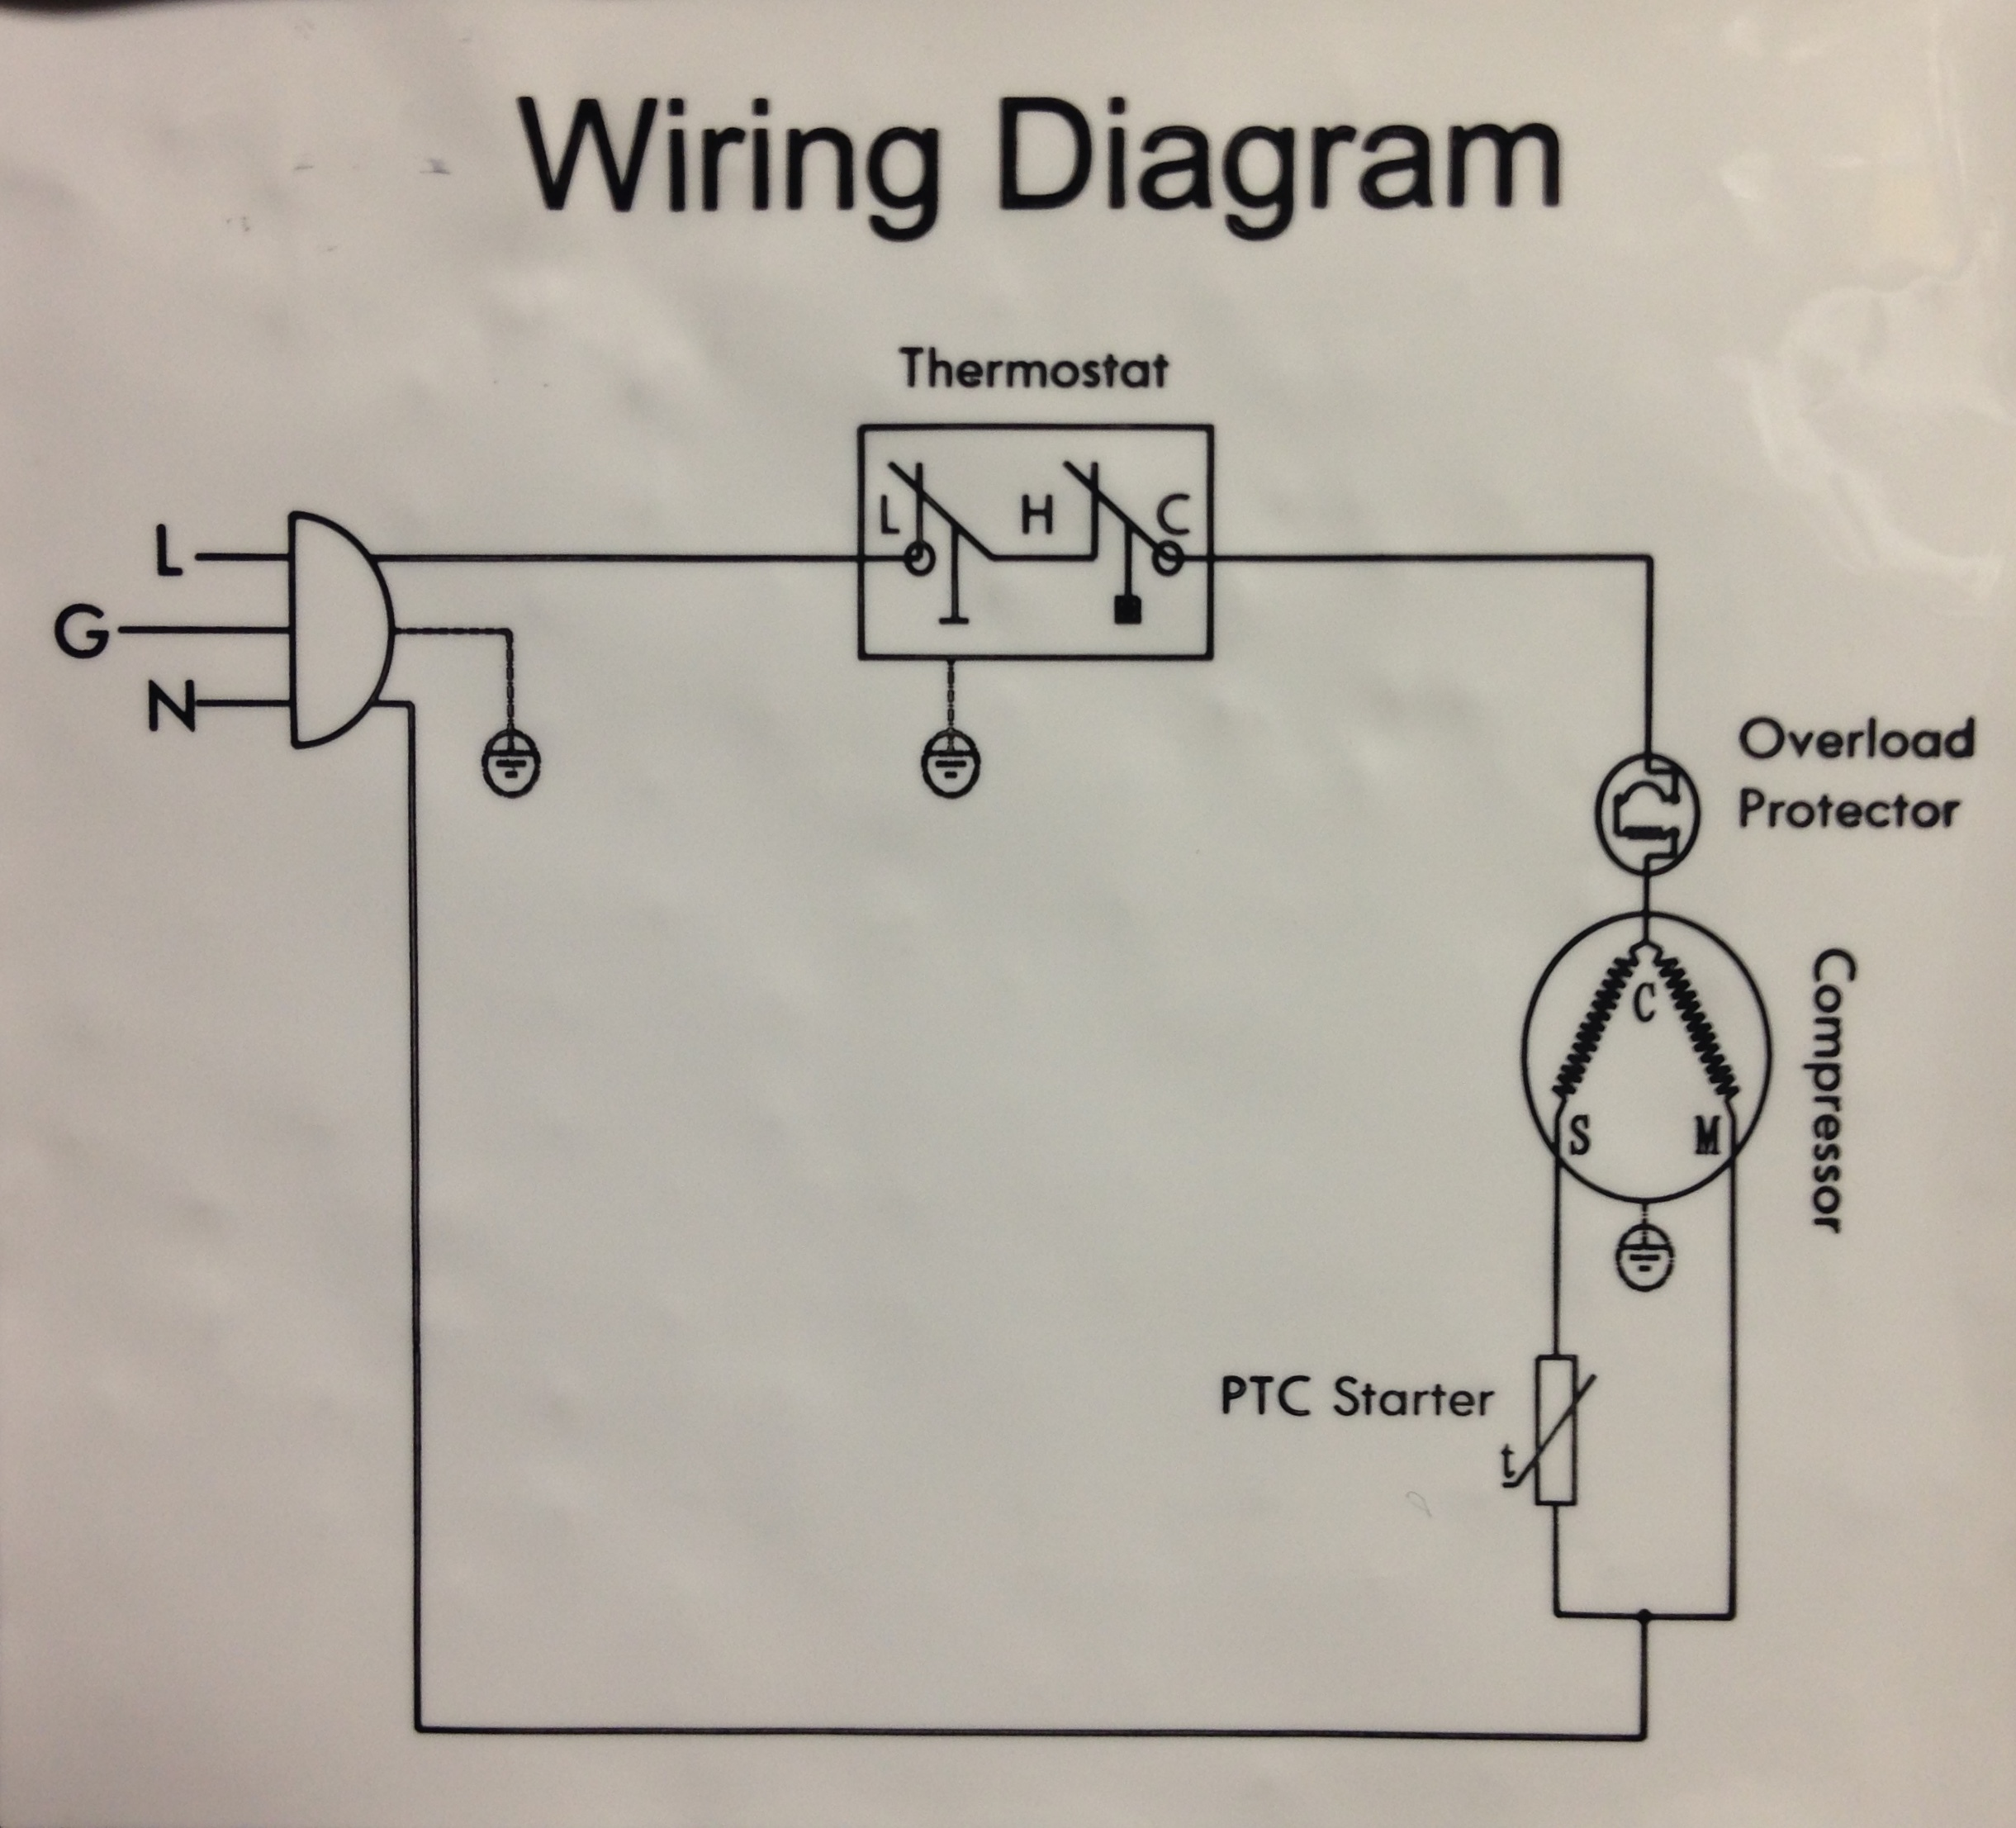 Refrigerator Thermostat Wiring Diagram - Machine Repair Manual on